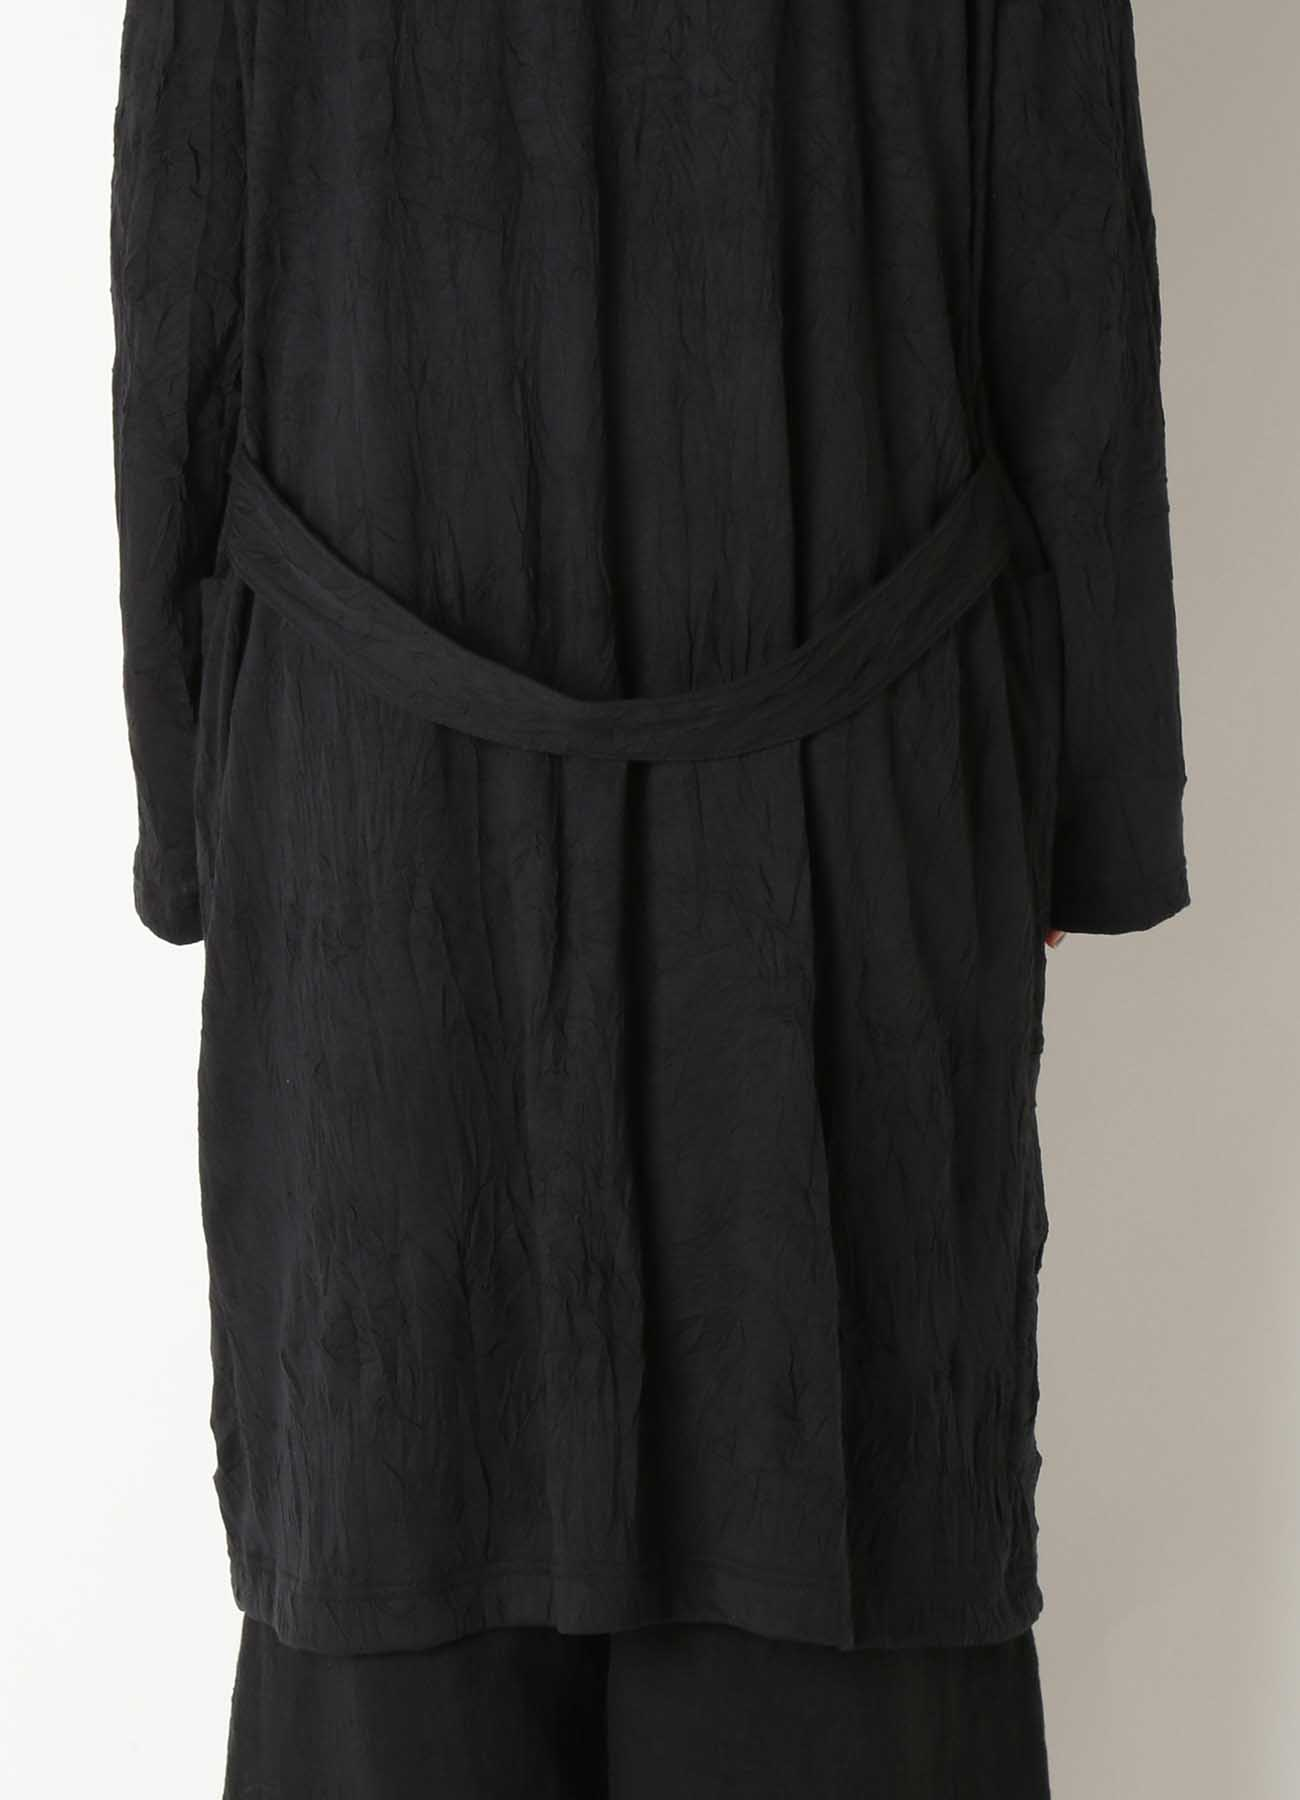 30/- T/C PS WRINKLED ROBE DRAWING BLOCK L